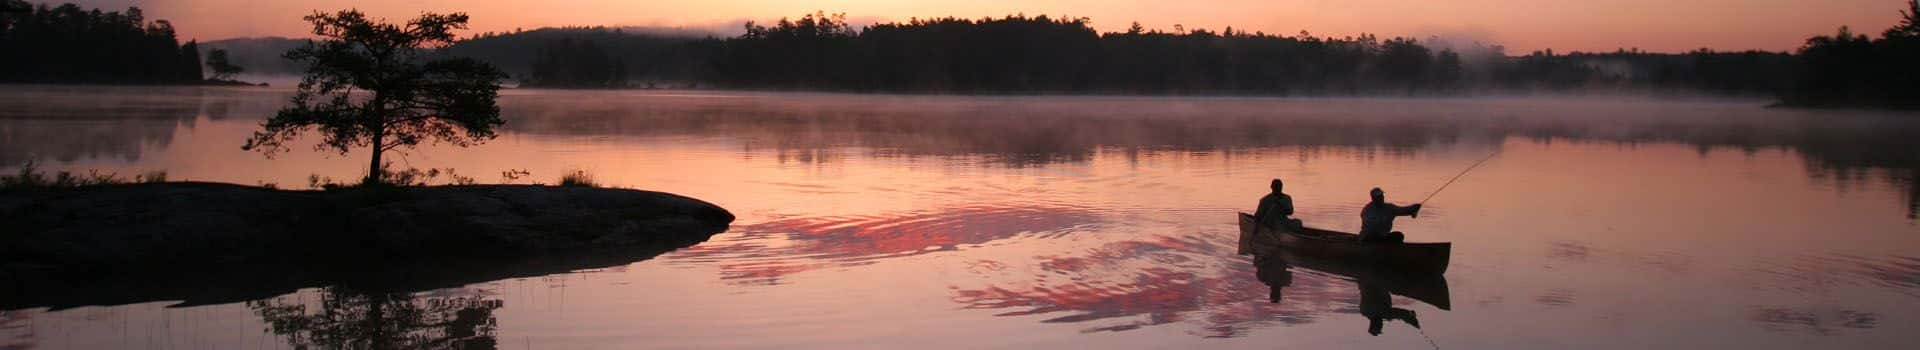 boundary-waters-fly-fishing-guide-service-ely-mn